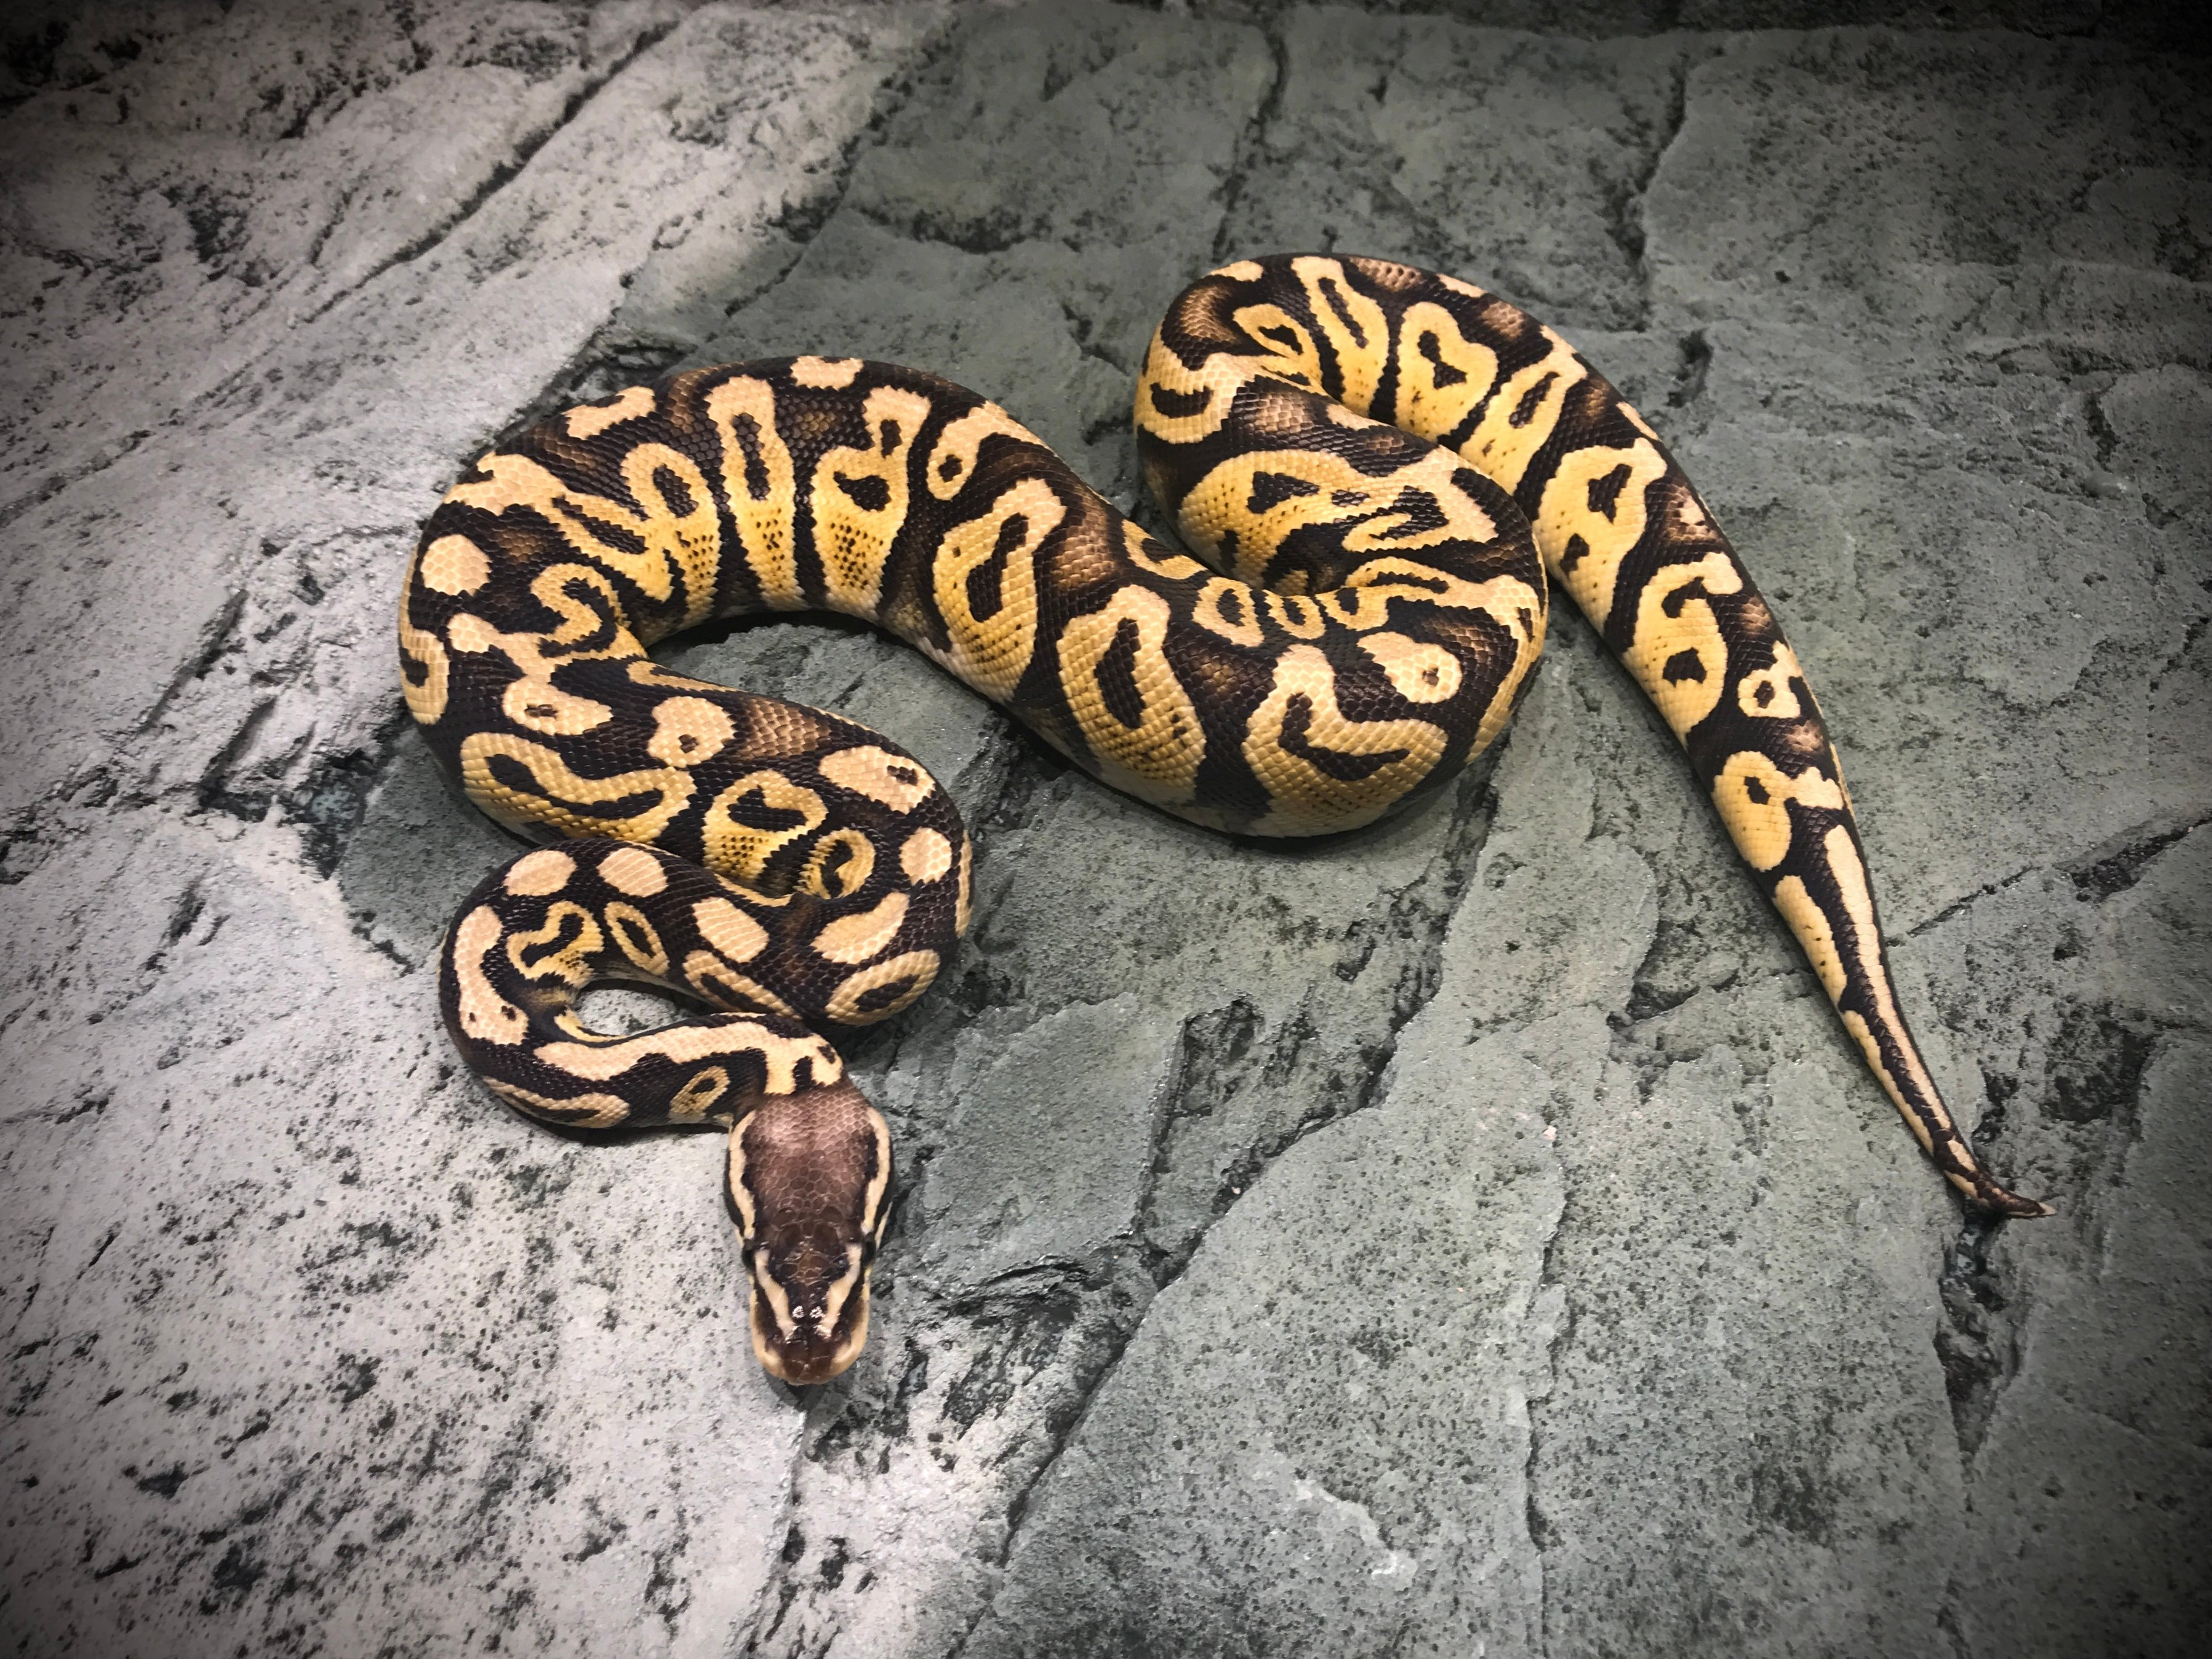 Pastel yellow belly (mulig het clown)